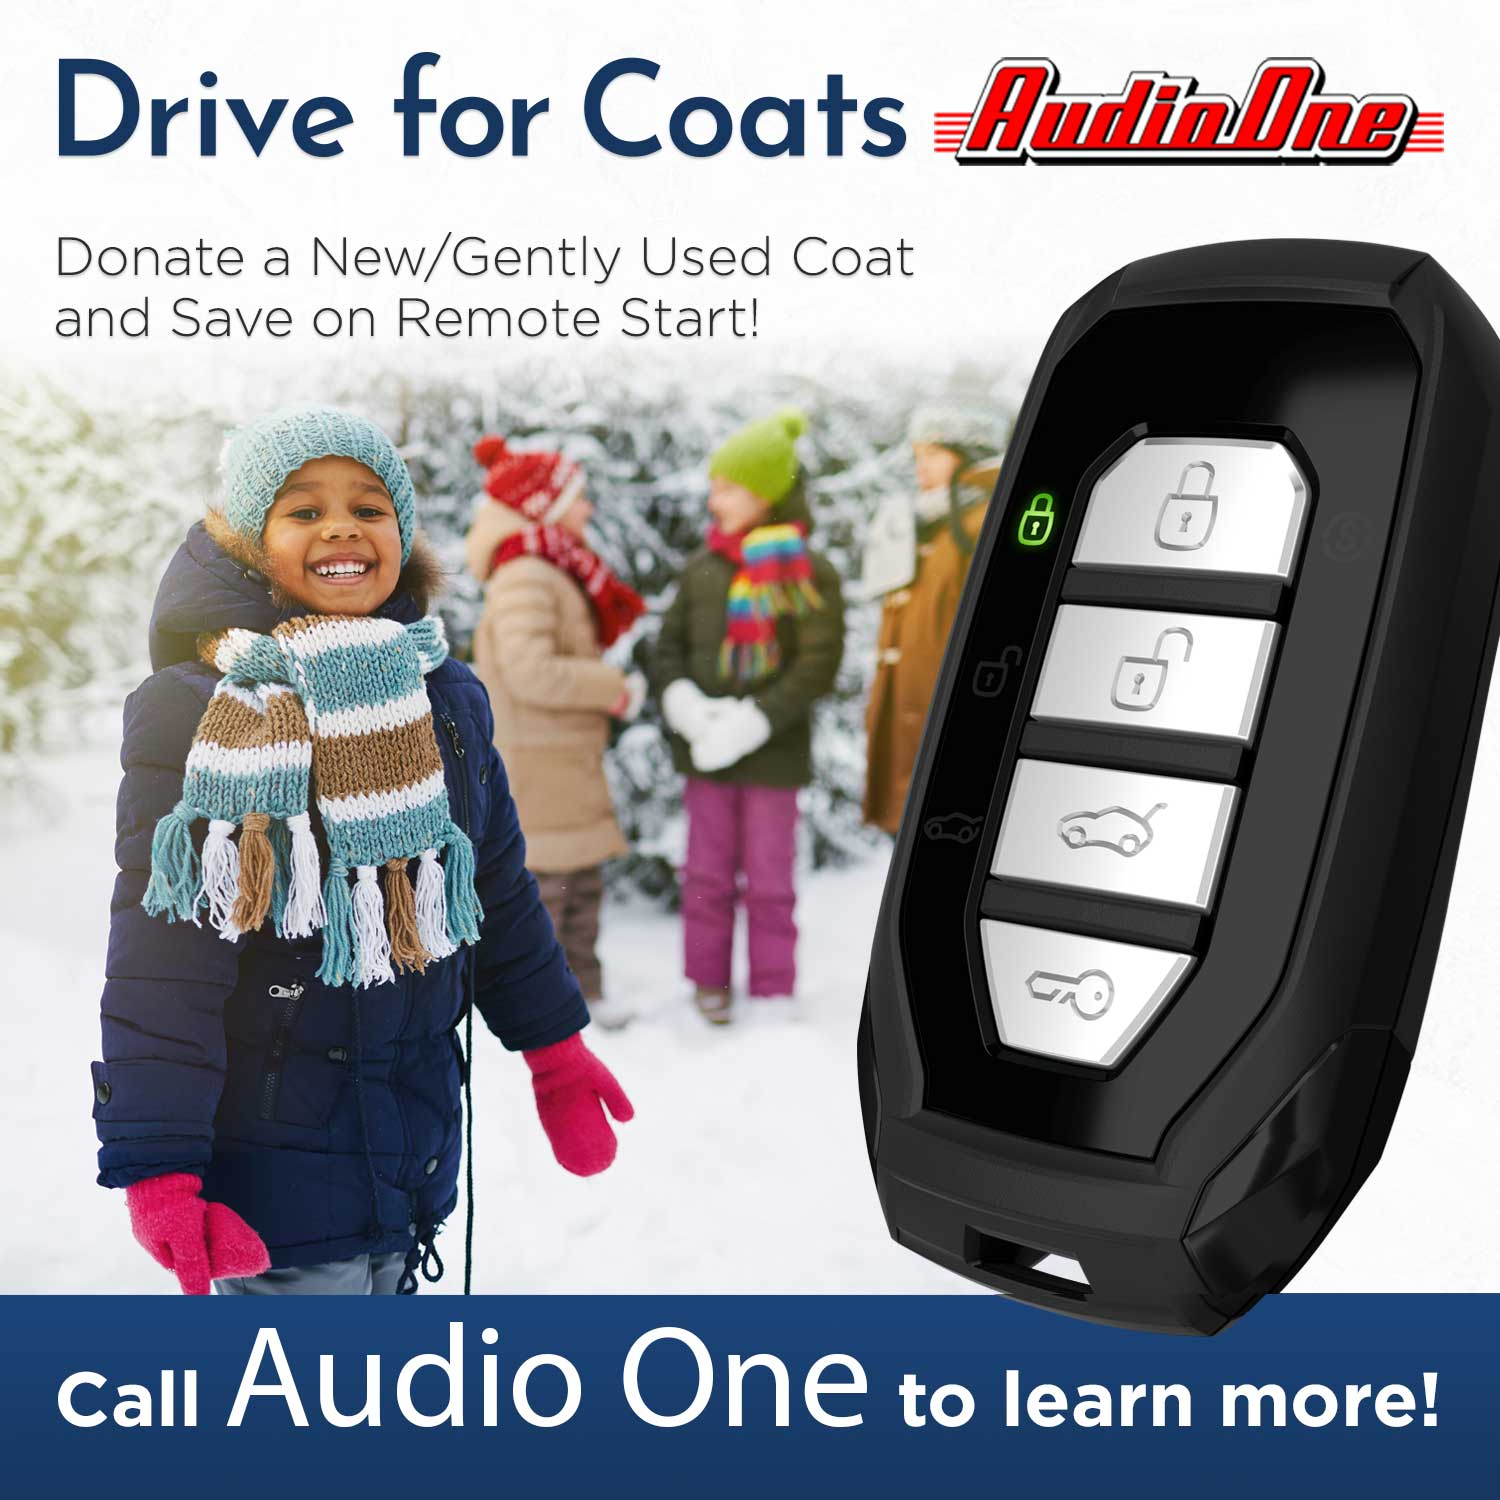 Drive For Coats Audio One Remote Starts